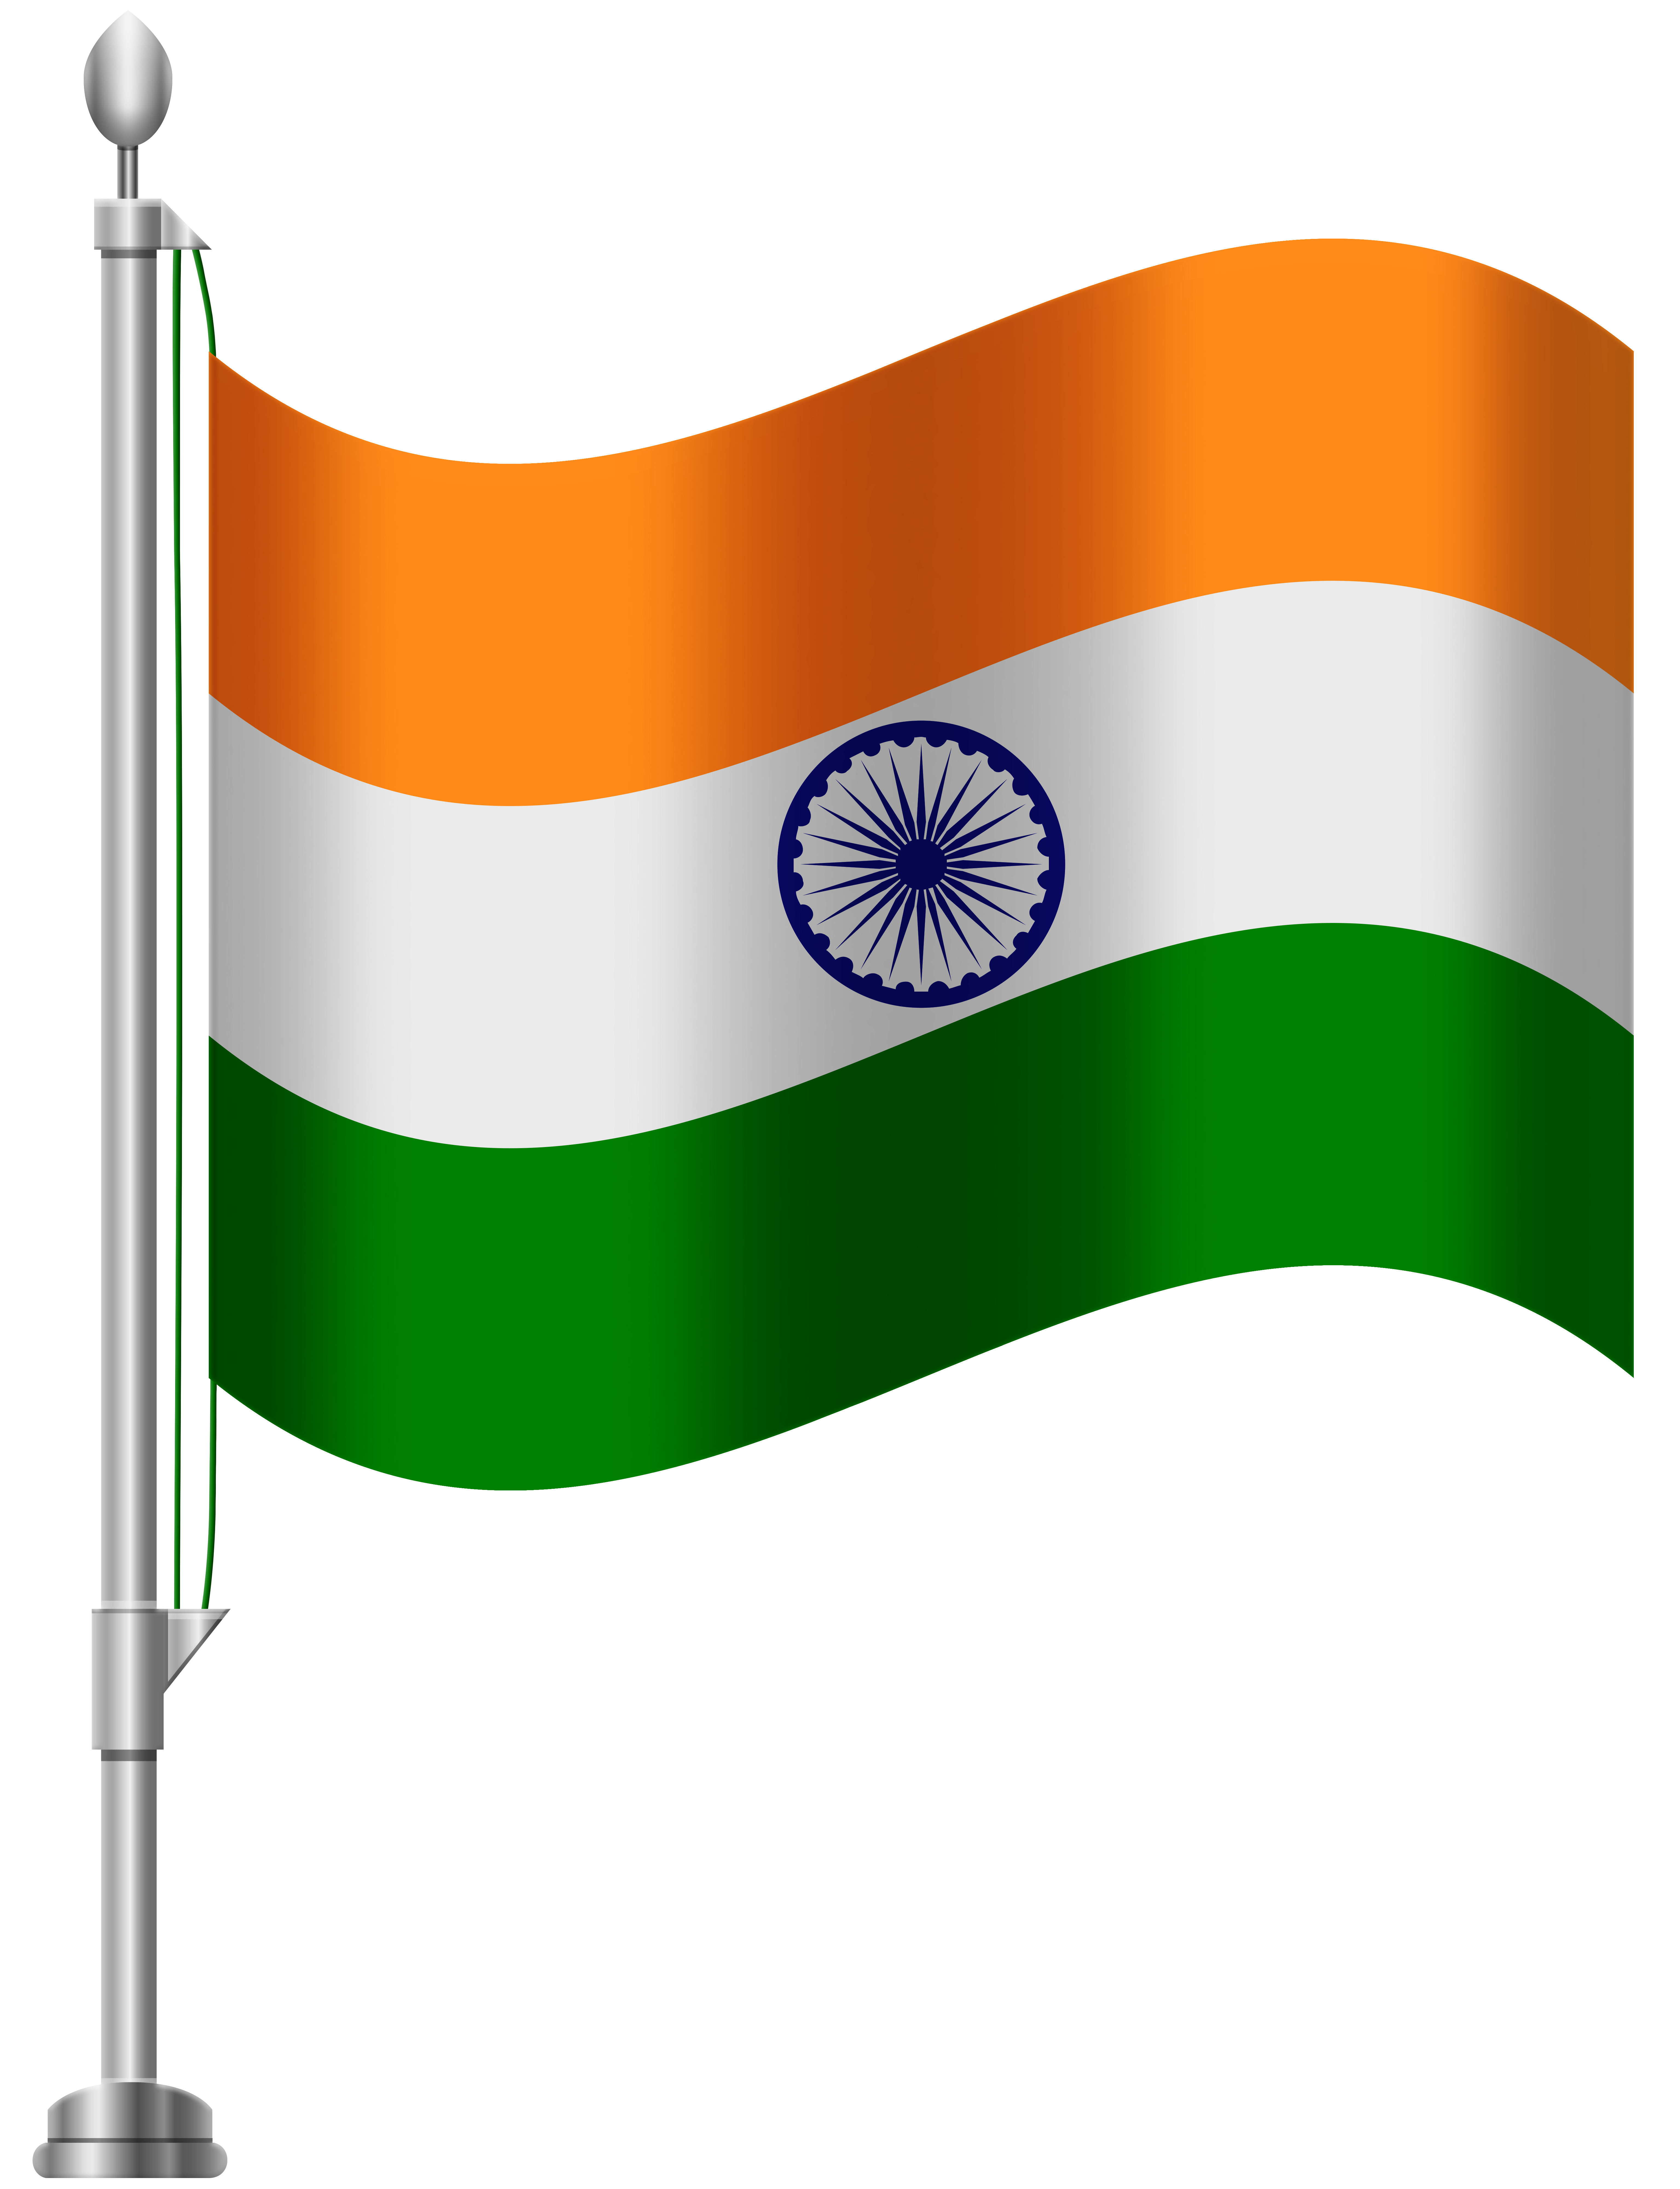 Wheel clipart flag indian. India png clip art